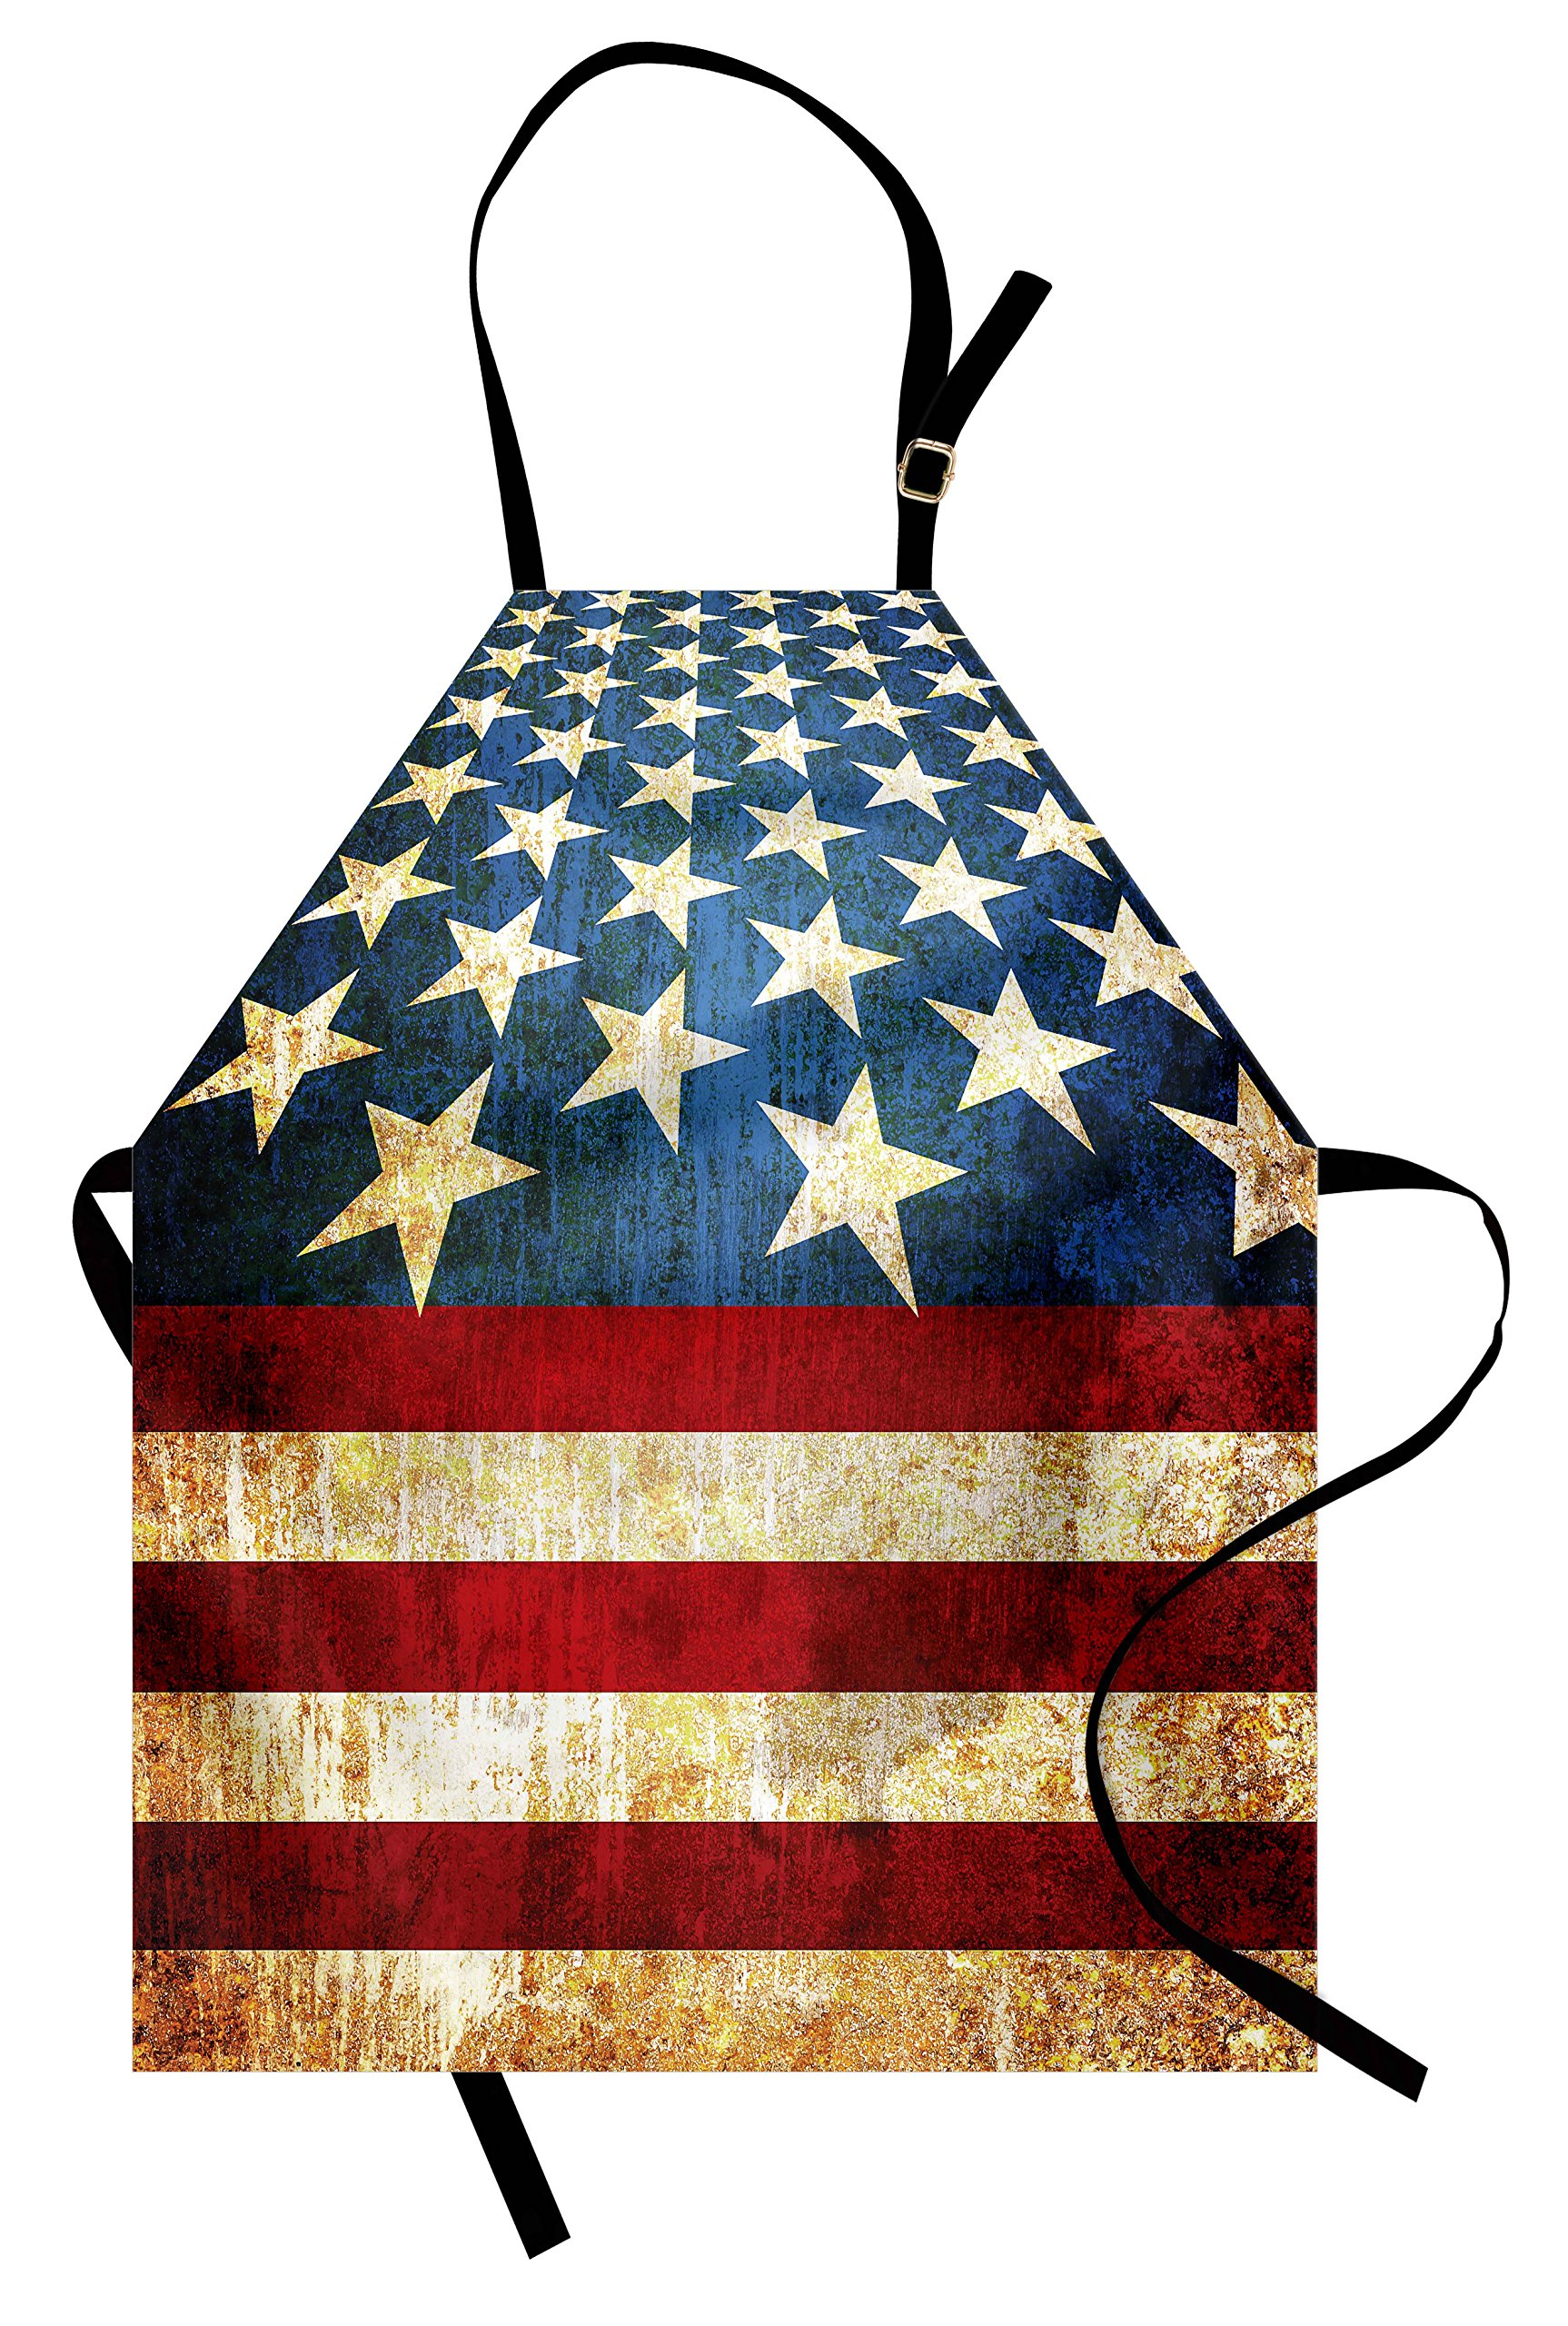 Lunarable 4th of July Apron, United States of America Flag Themed Grunge Illustration Stars and Stripes, Unisex Kitchen Bib Apron with Adjustable Neck for Cooking Baking Gardening, Multicolor